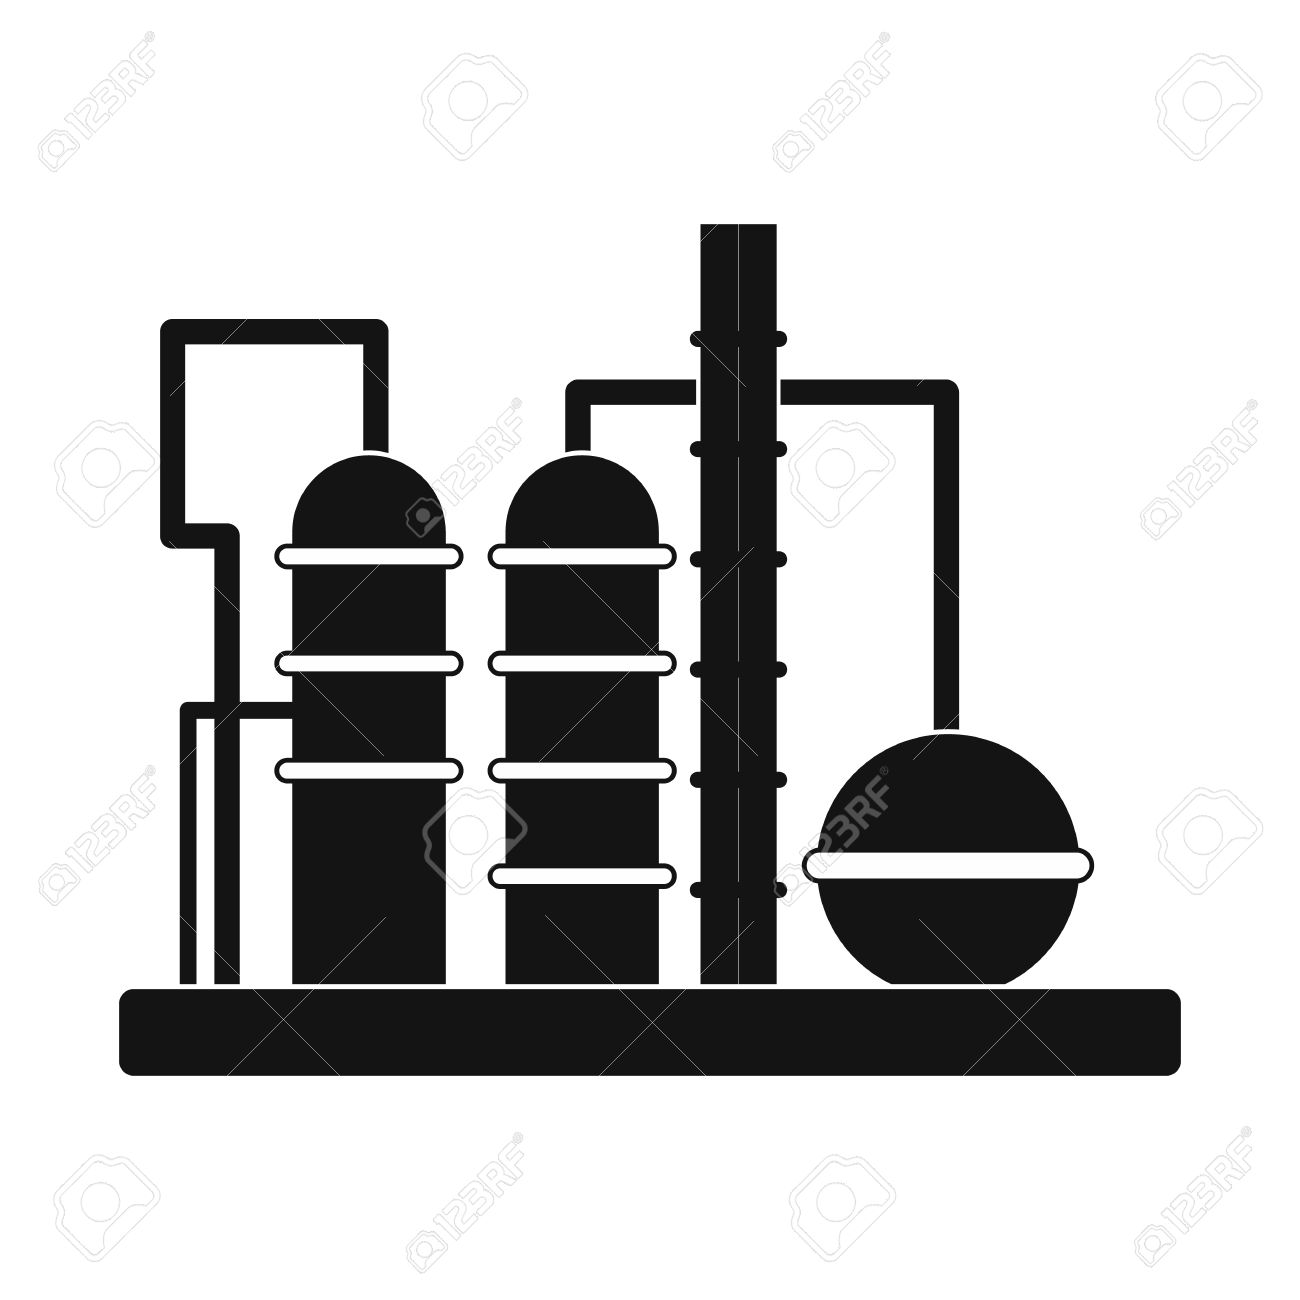 Oil Refinery Clipart Black And White.